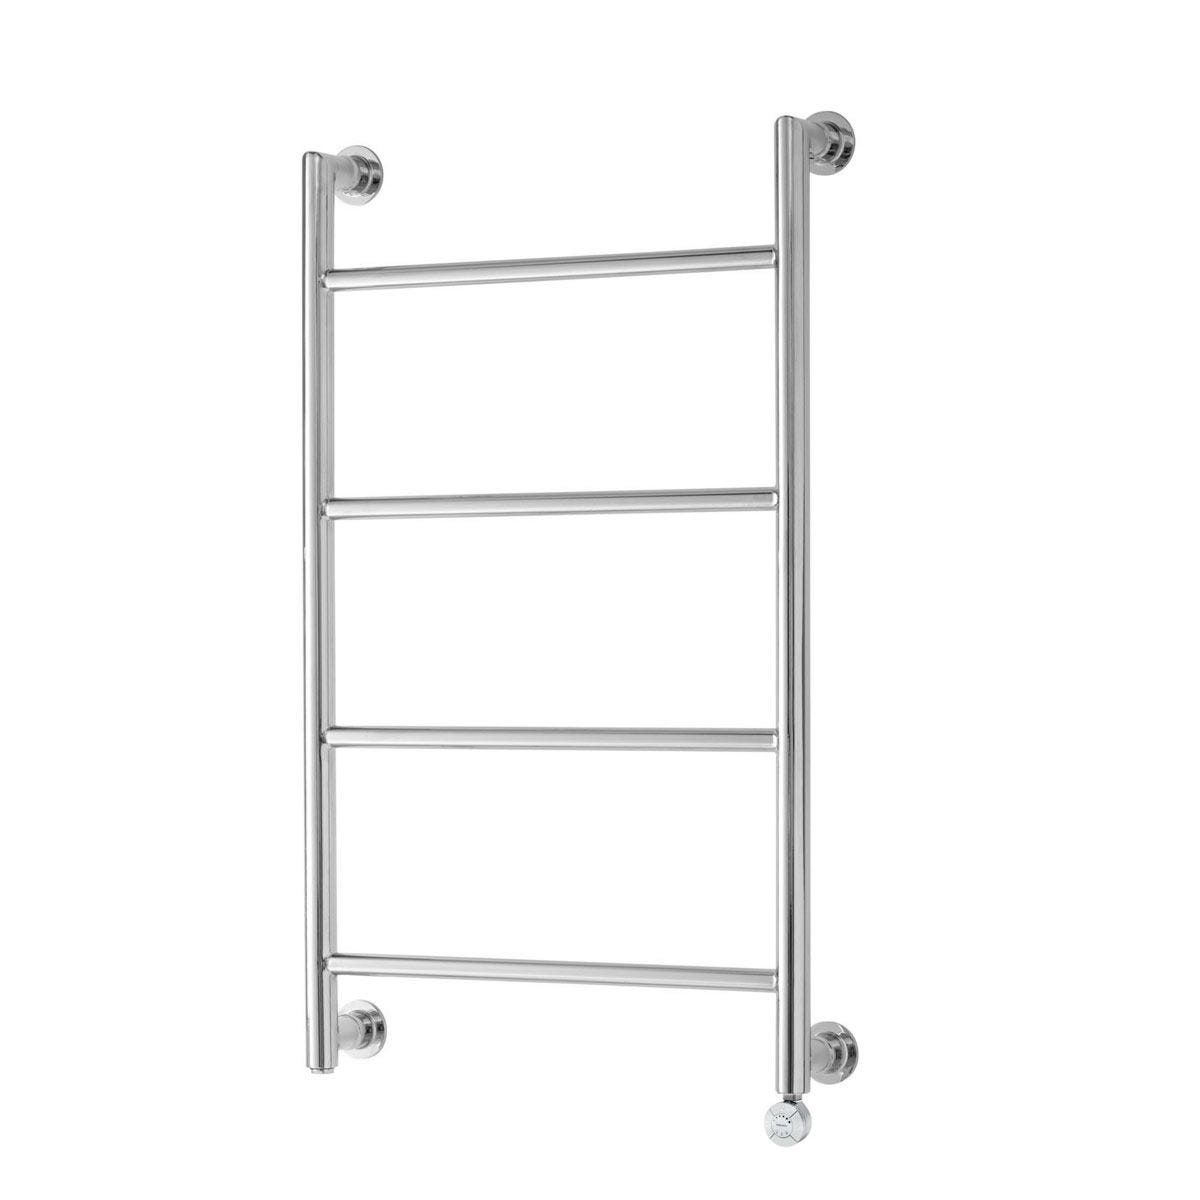 Heating Style Ballymore 900mm x 560mm Electric Heated Towel Warmer - Chrome